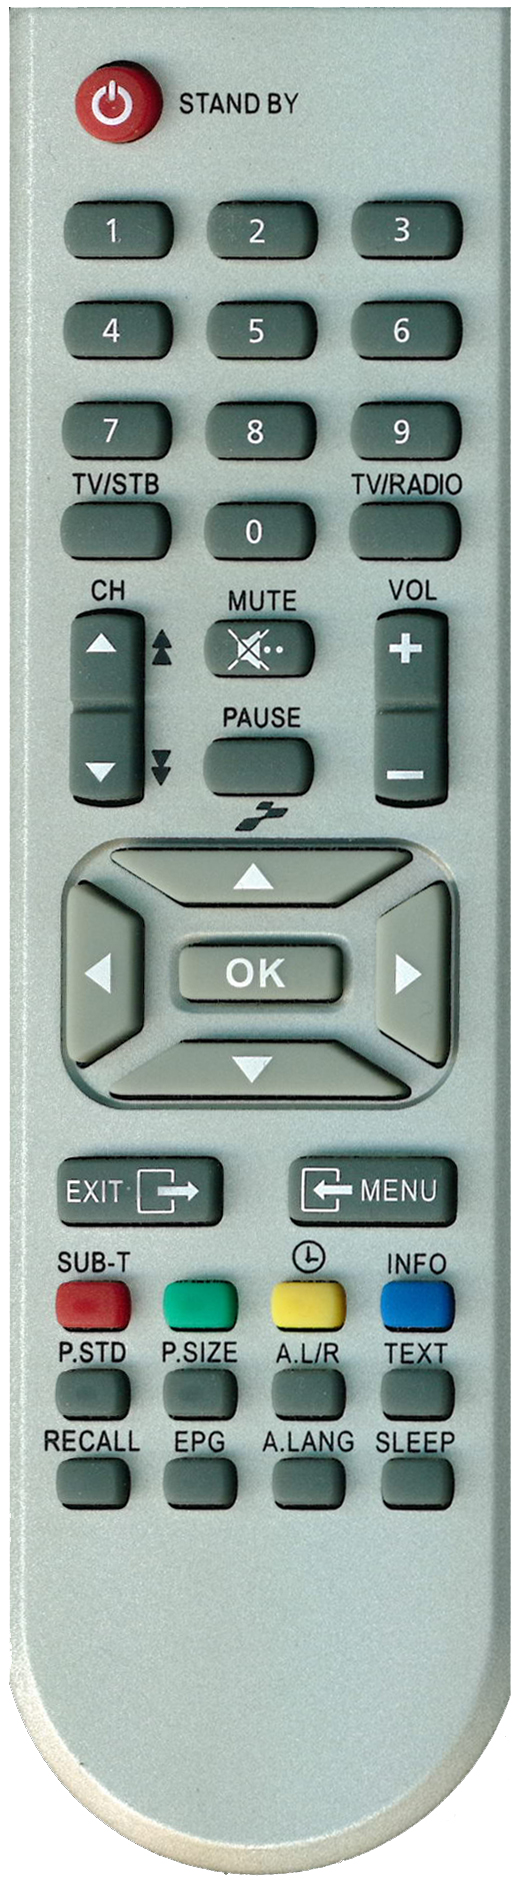 Remote Control for Kaon Satellite Receivers